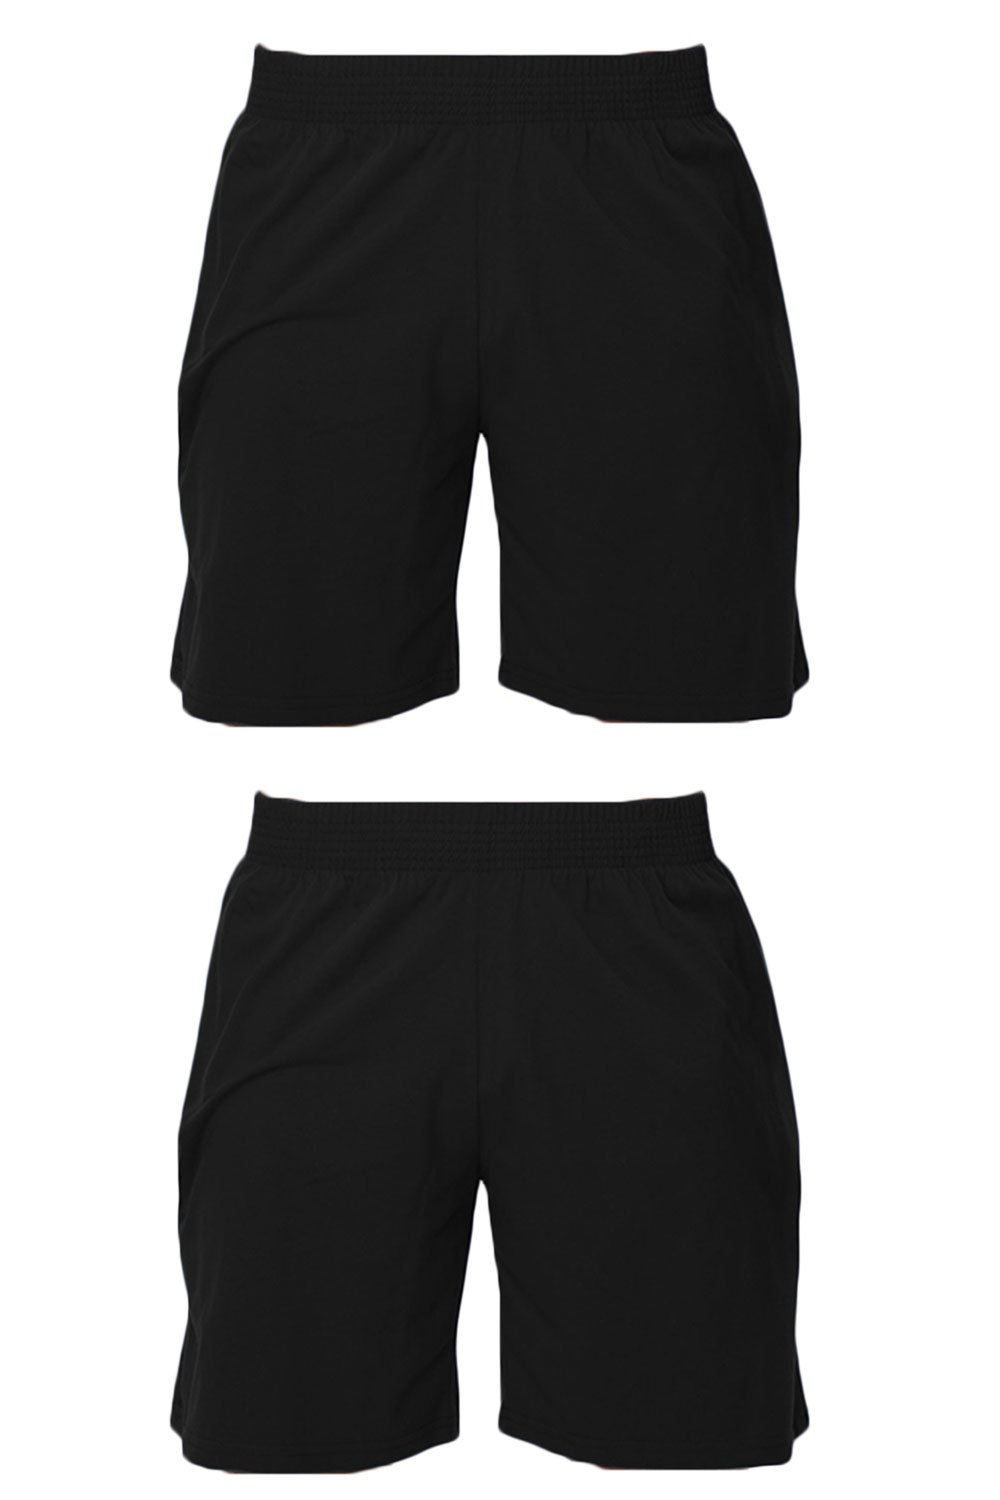 Men's 2 Pack (Qty 2) American Made Classic Cotton Pocket Shorts (Small, 2 Pack Black/Black)